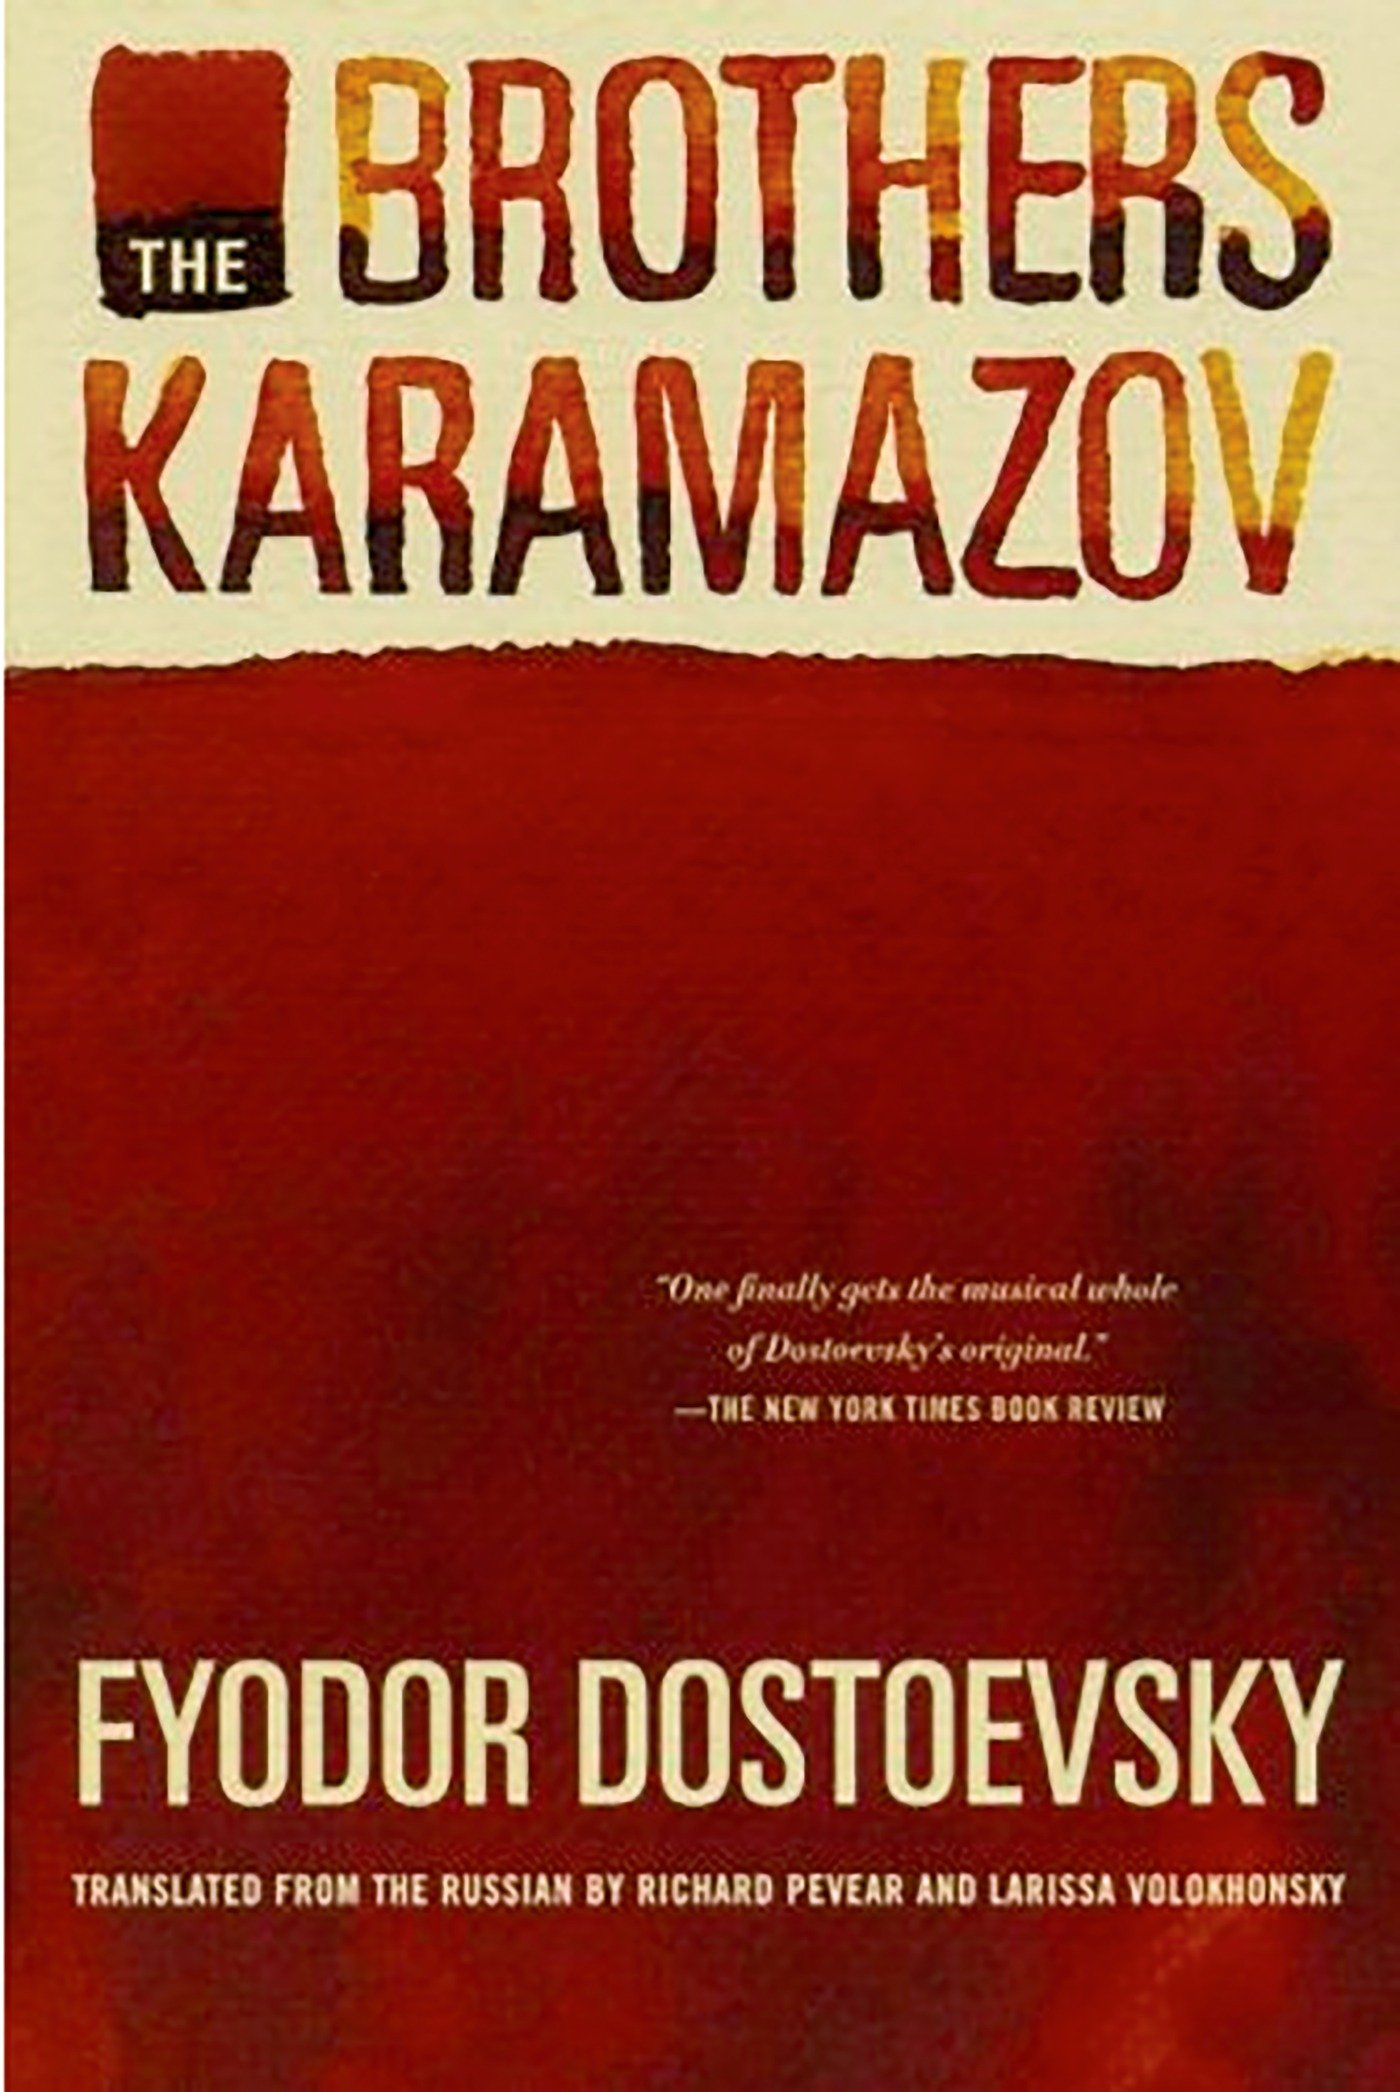 Download ebook The Brothers Karamazov